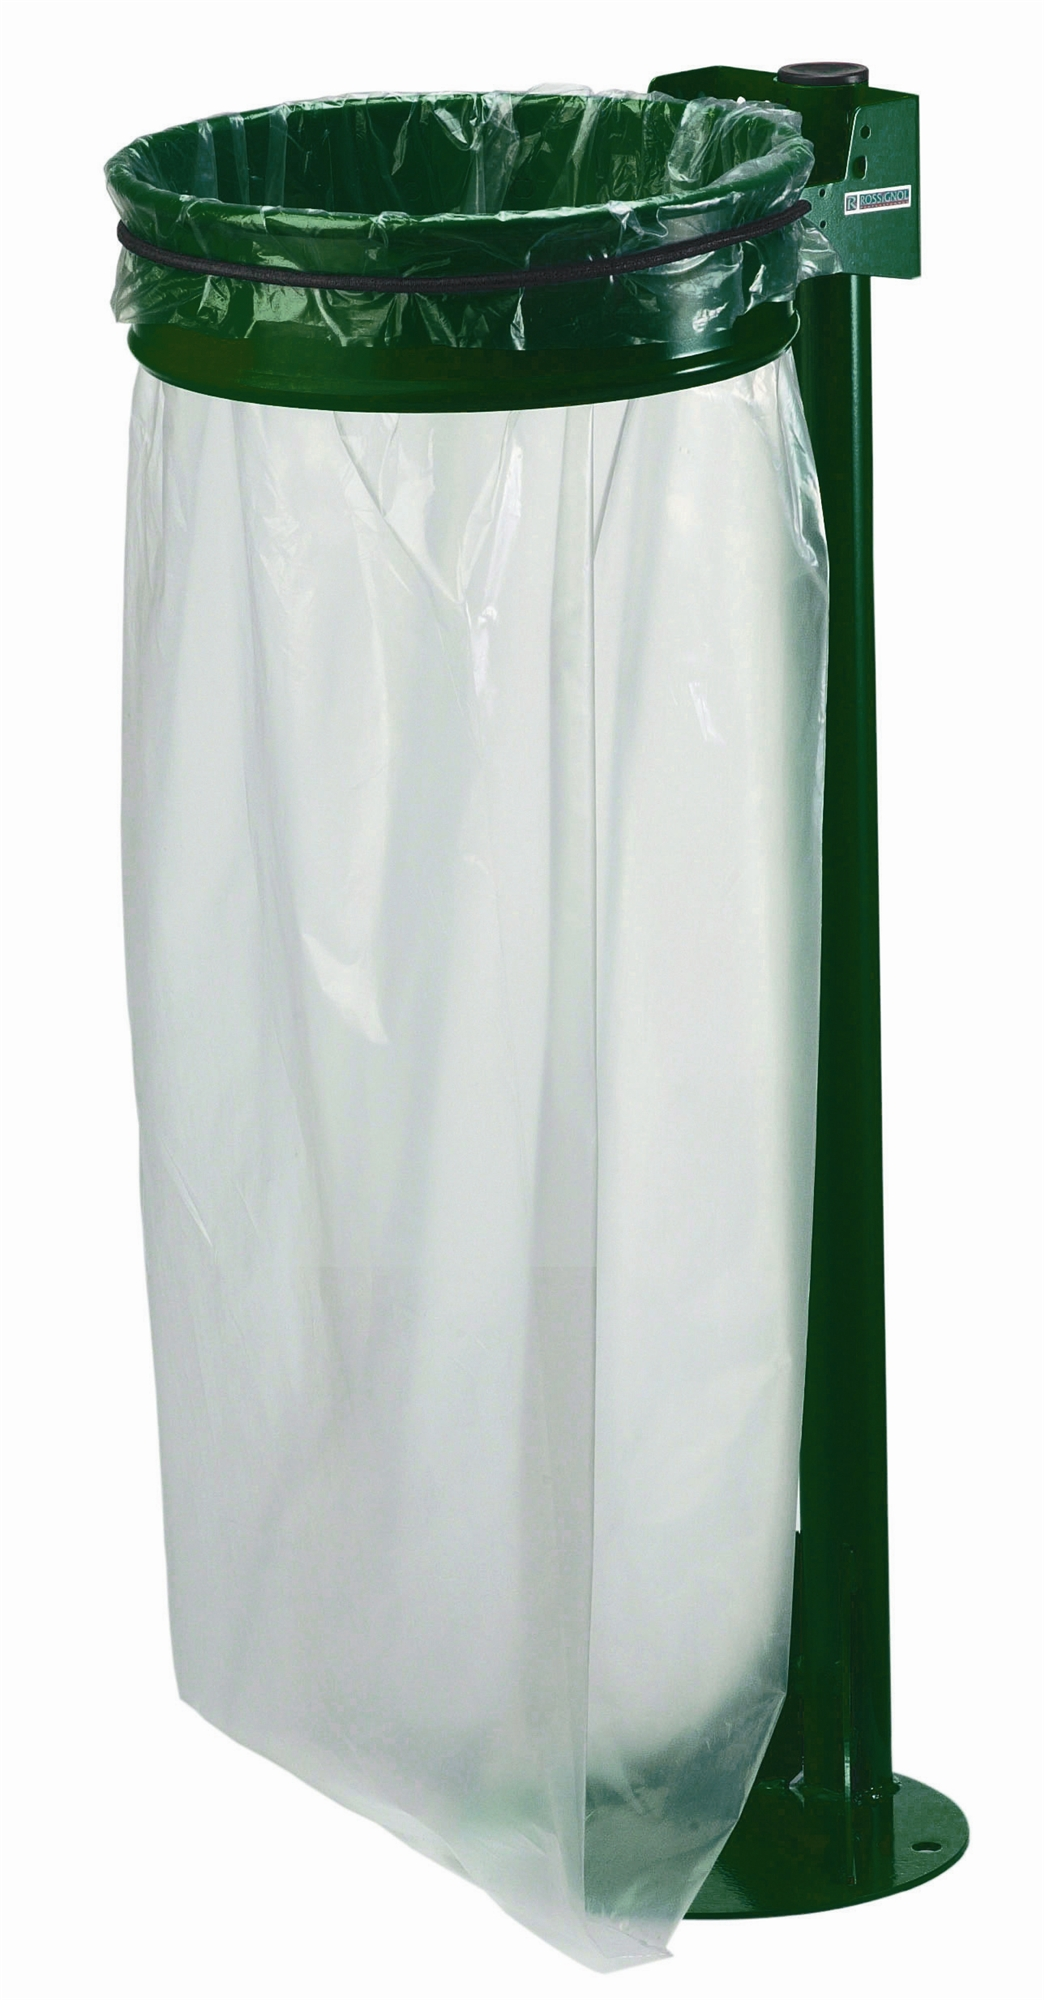 Reinforced Transparent 110 Liter Trash Bag